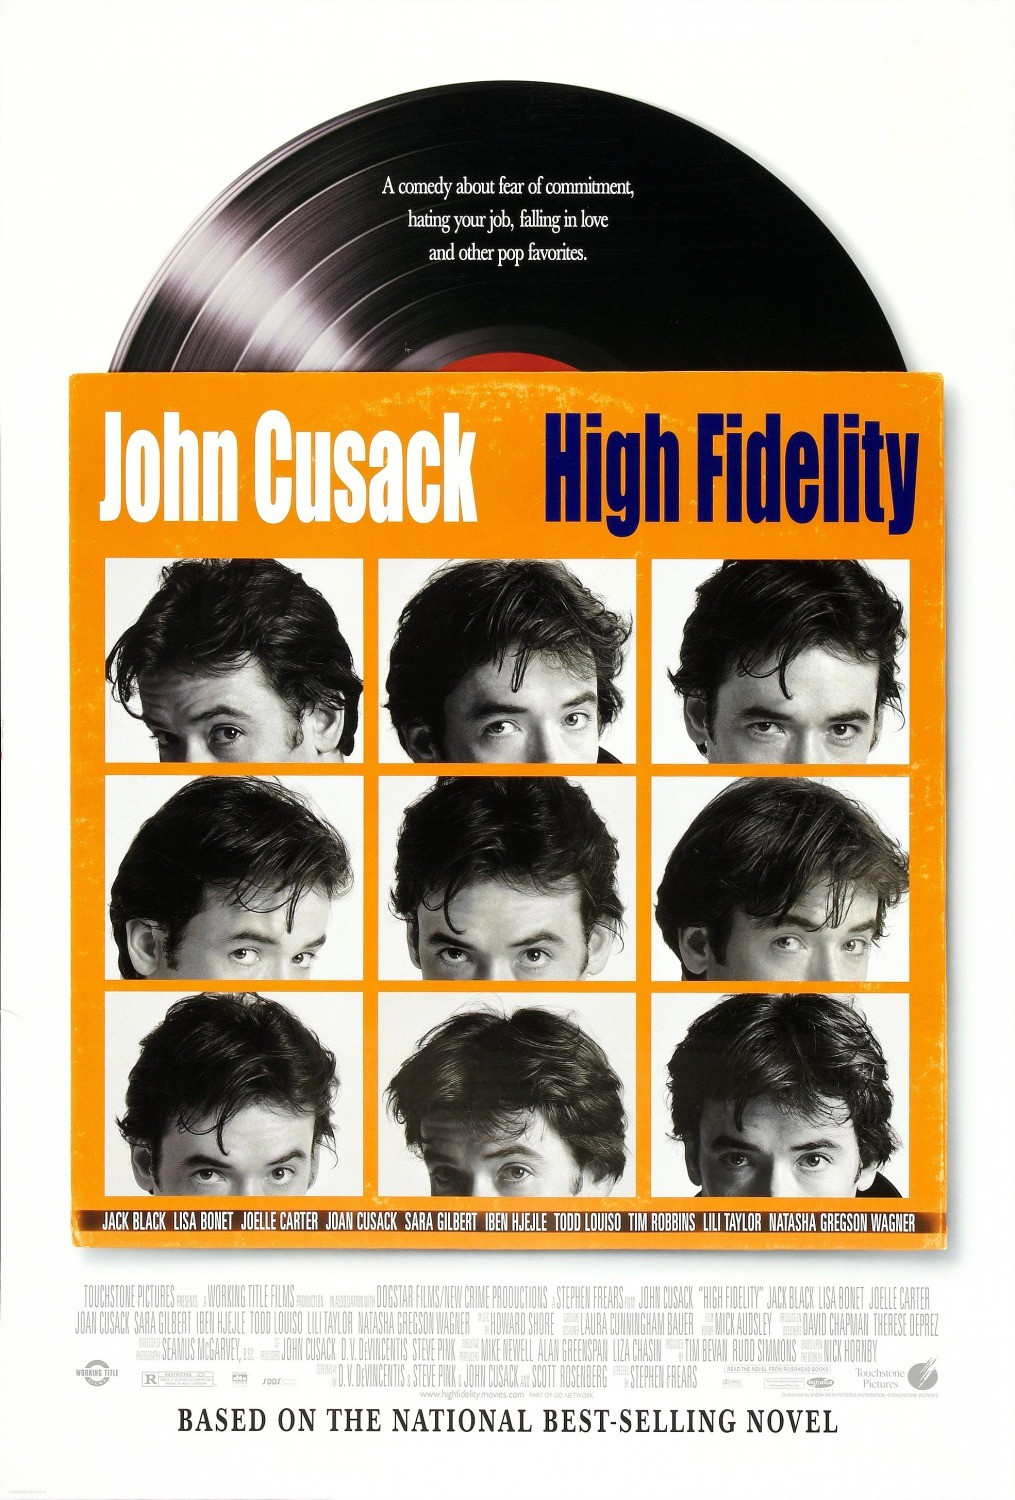 HIGH FIDELITY on RECORD STORE DAY